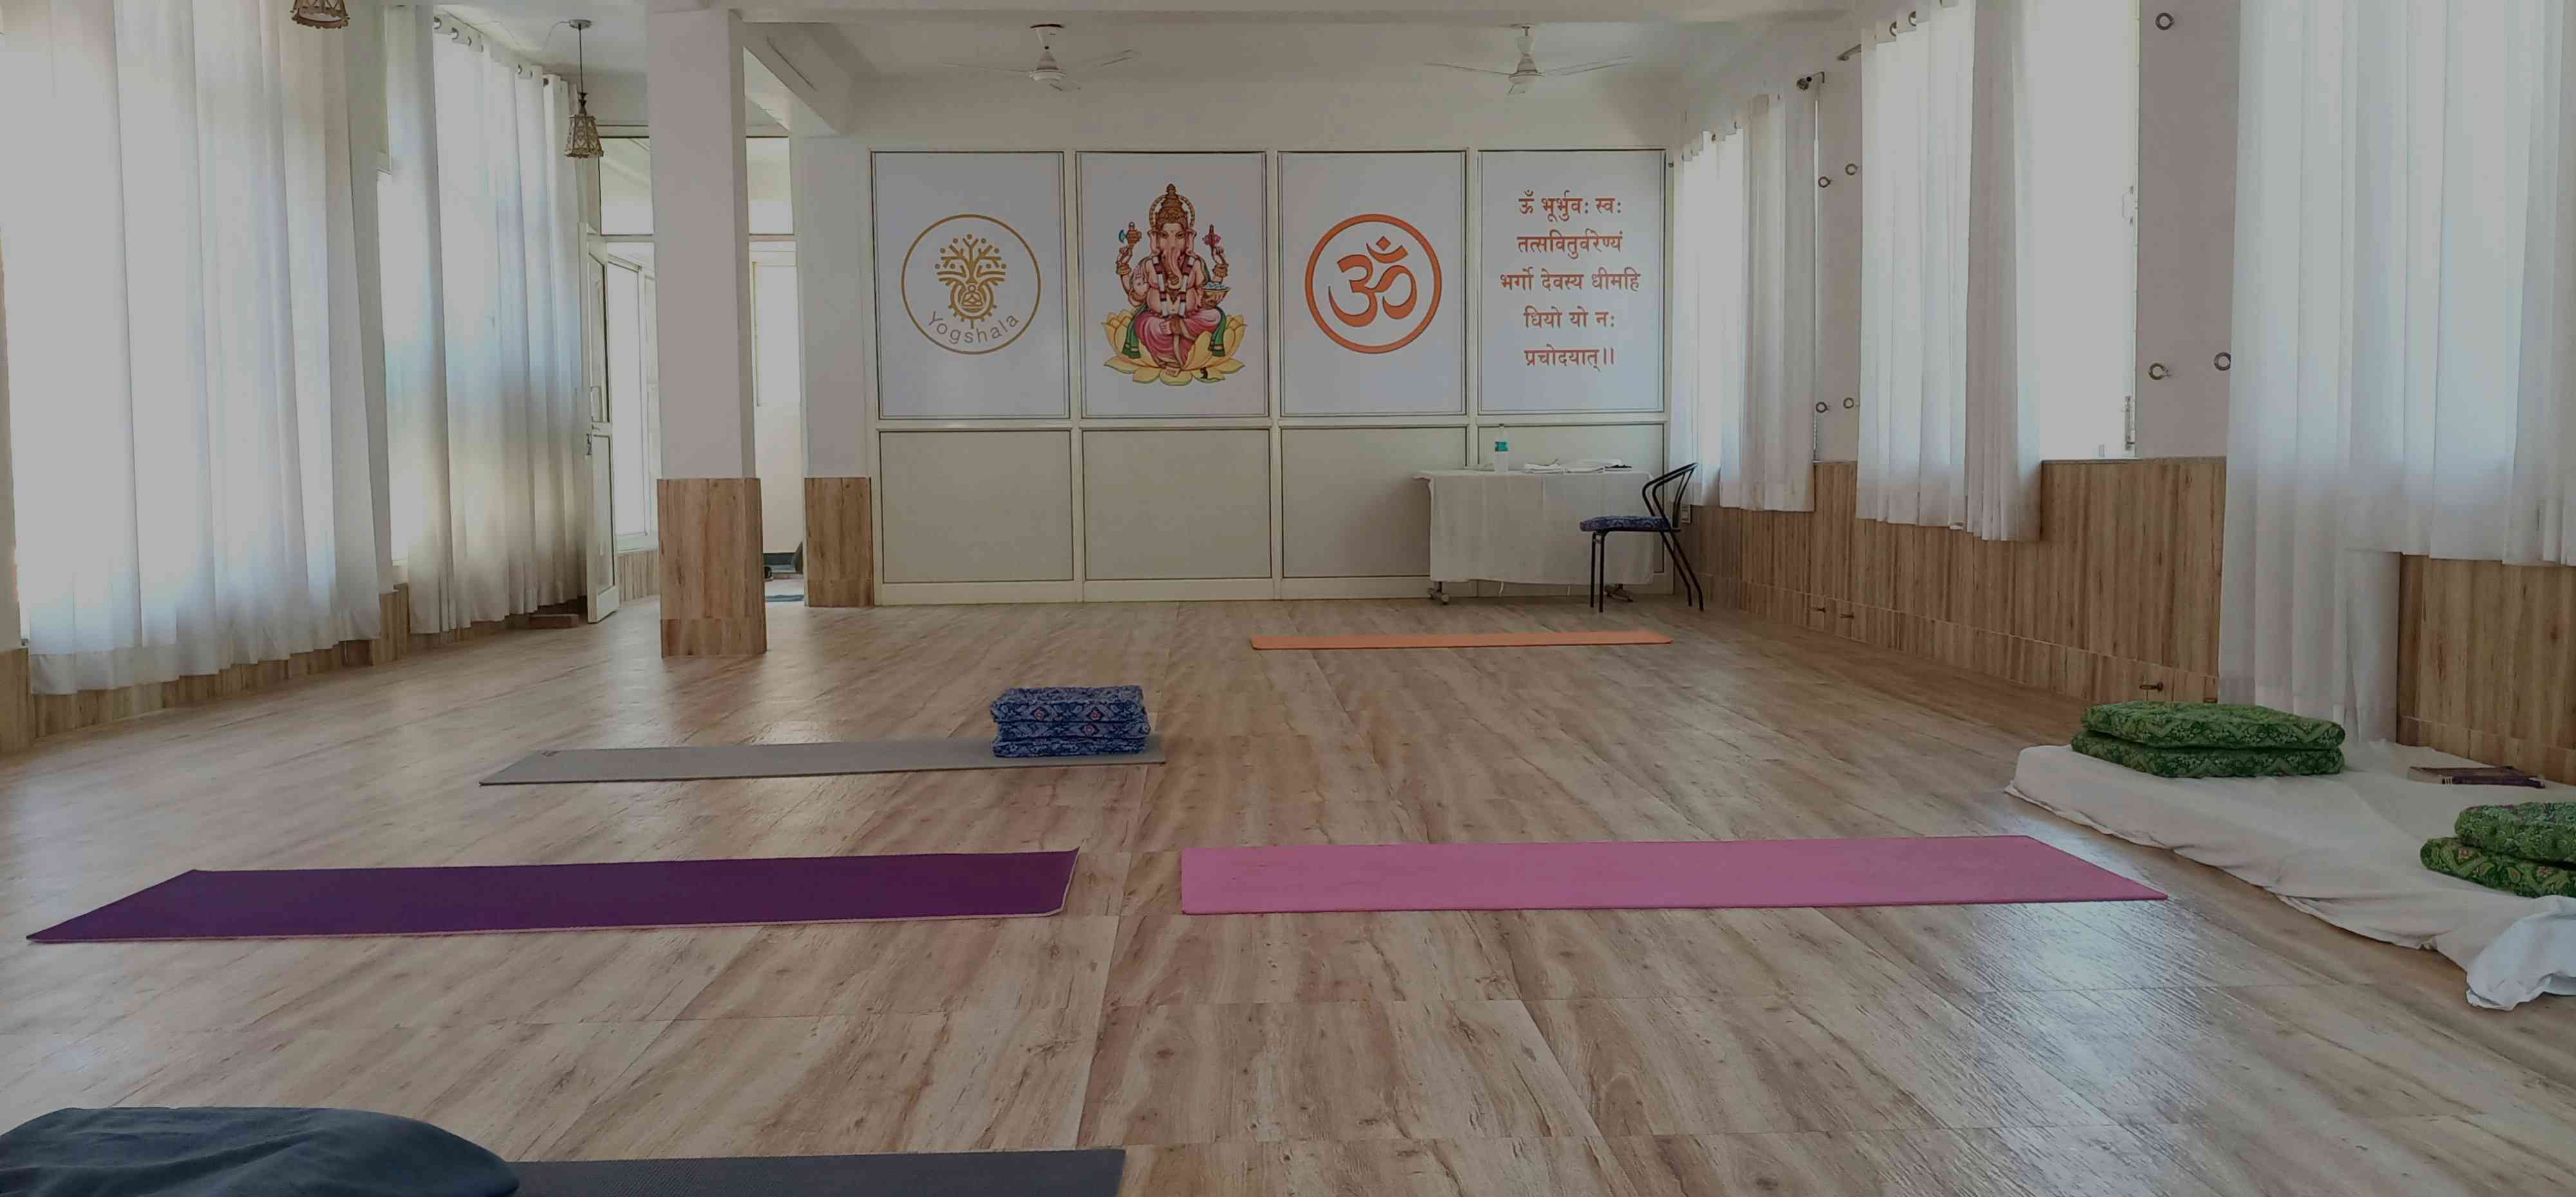 yogshala yoga school